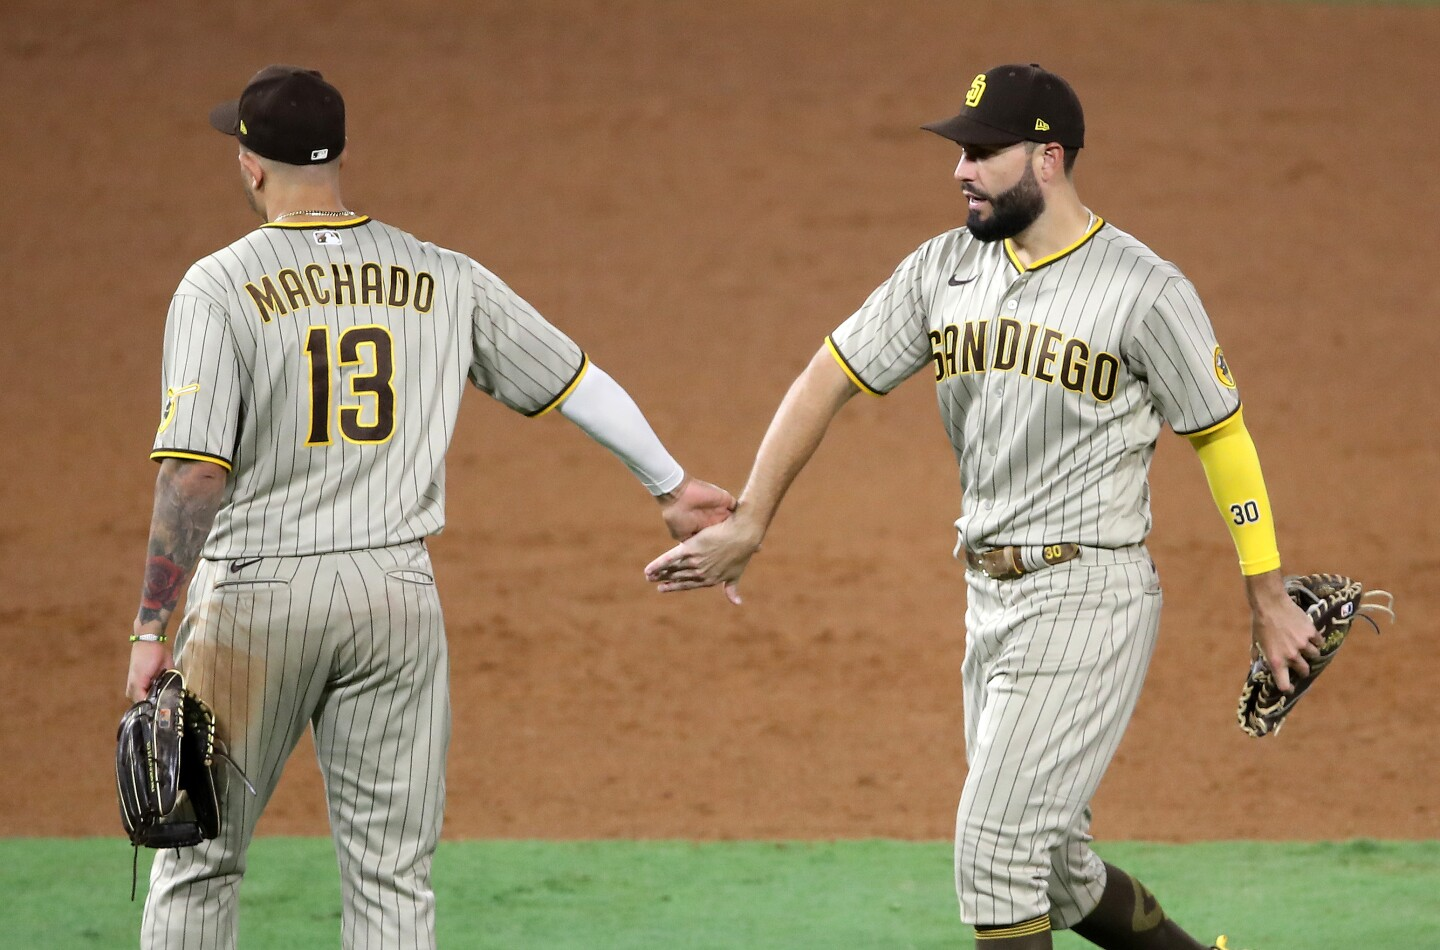 ANAHEIM, CALIFORNIA - SEPTEMBER 02: Manny Machado #13 congratulates Eric Hosmer #30 of the San Diego Padres after defeatig the Los Angeles Angels 11-4 in a game at Angel Stadium of Anaheim on September 02, 2020 in Anaheim, California. (Photo by Sean M. Haffey/Getty Images)